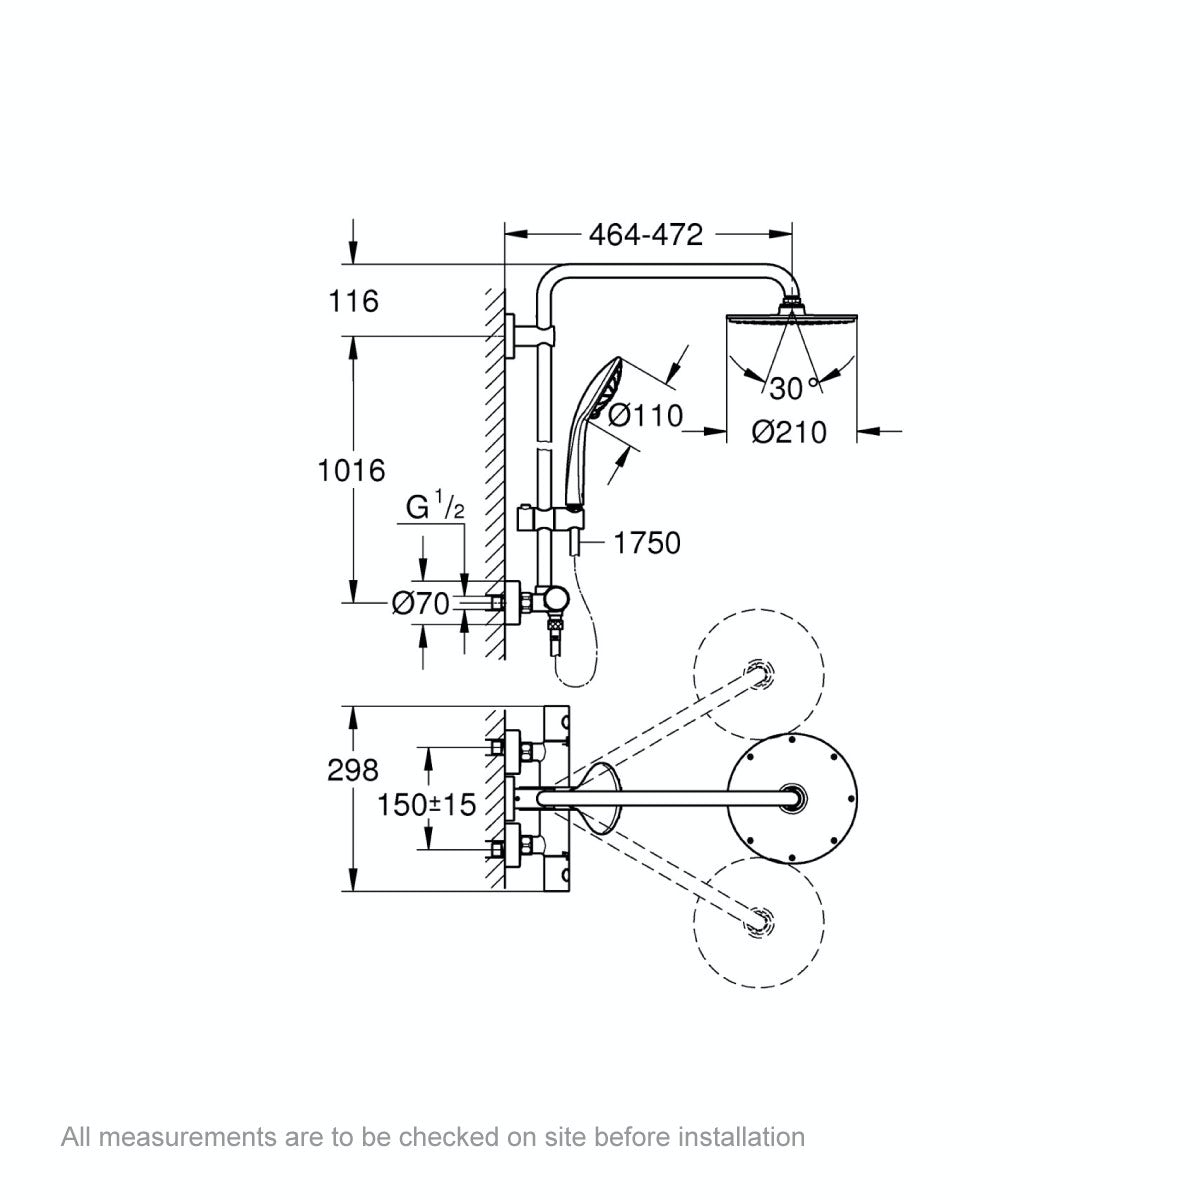 Dimensions for Grohe Euphoria XXL 210 shower system